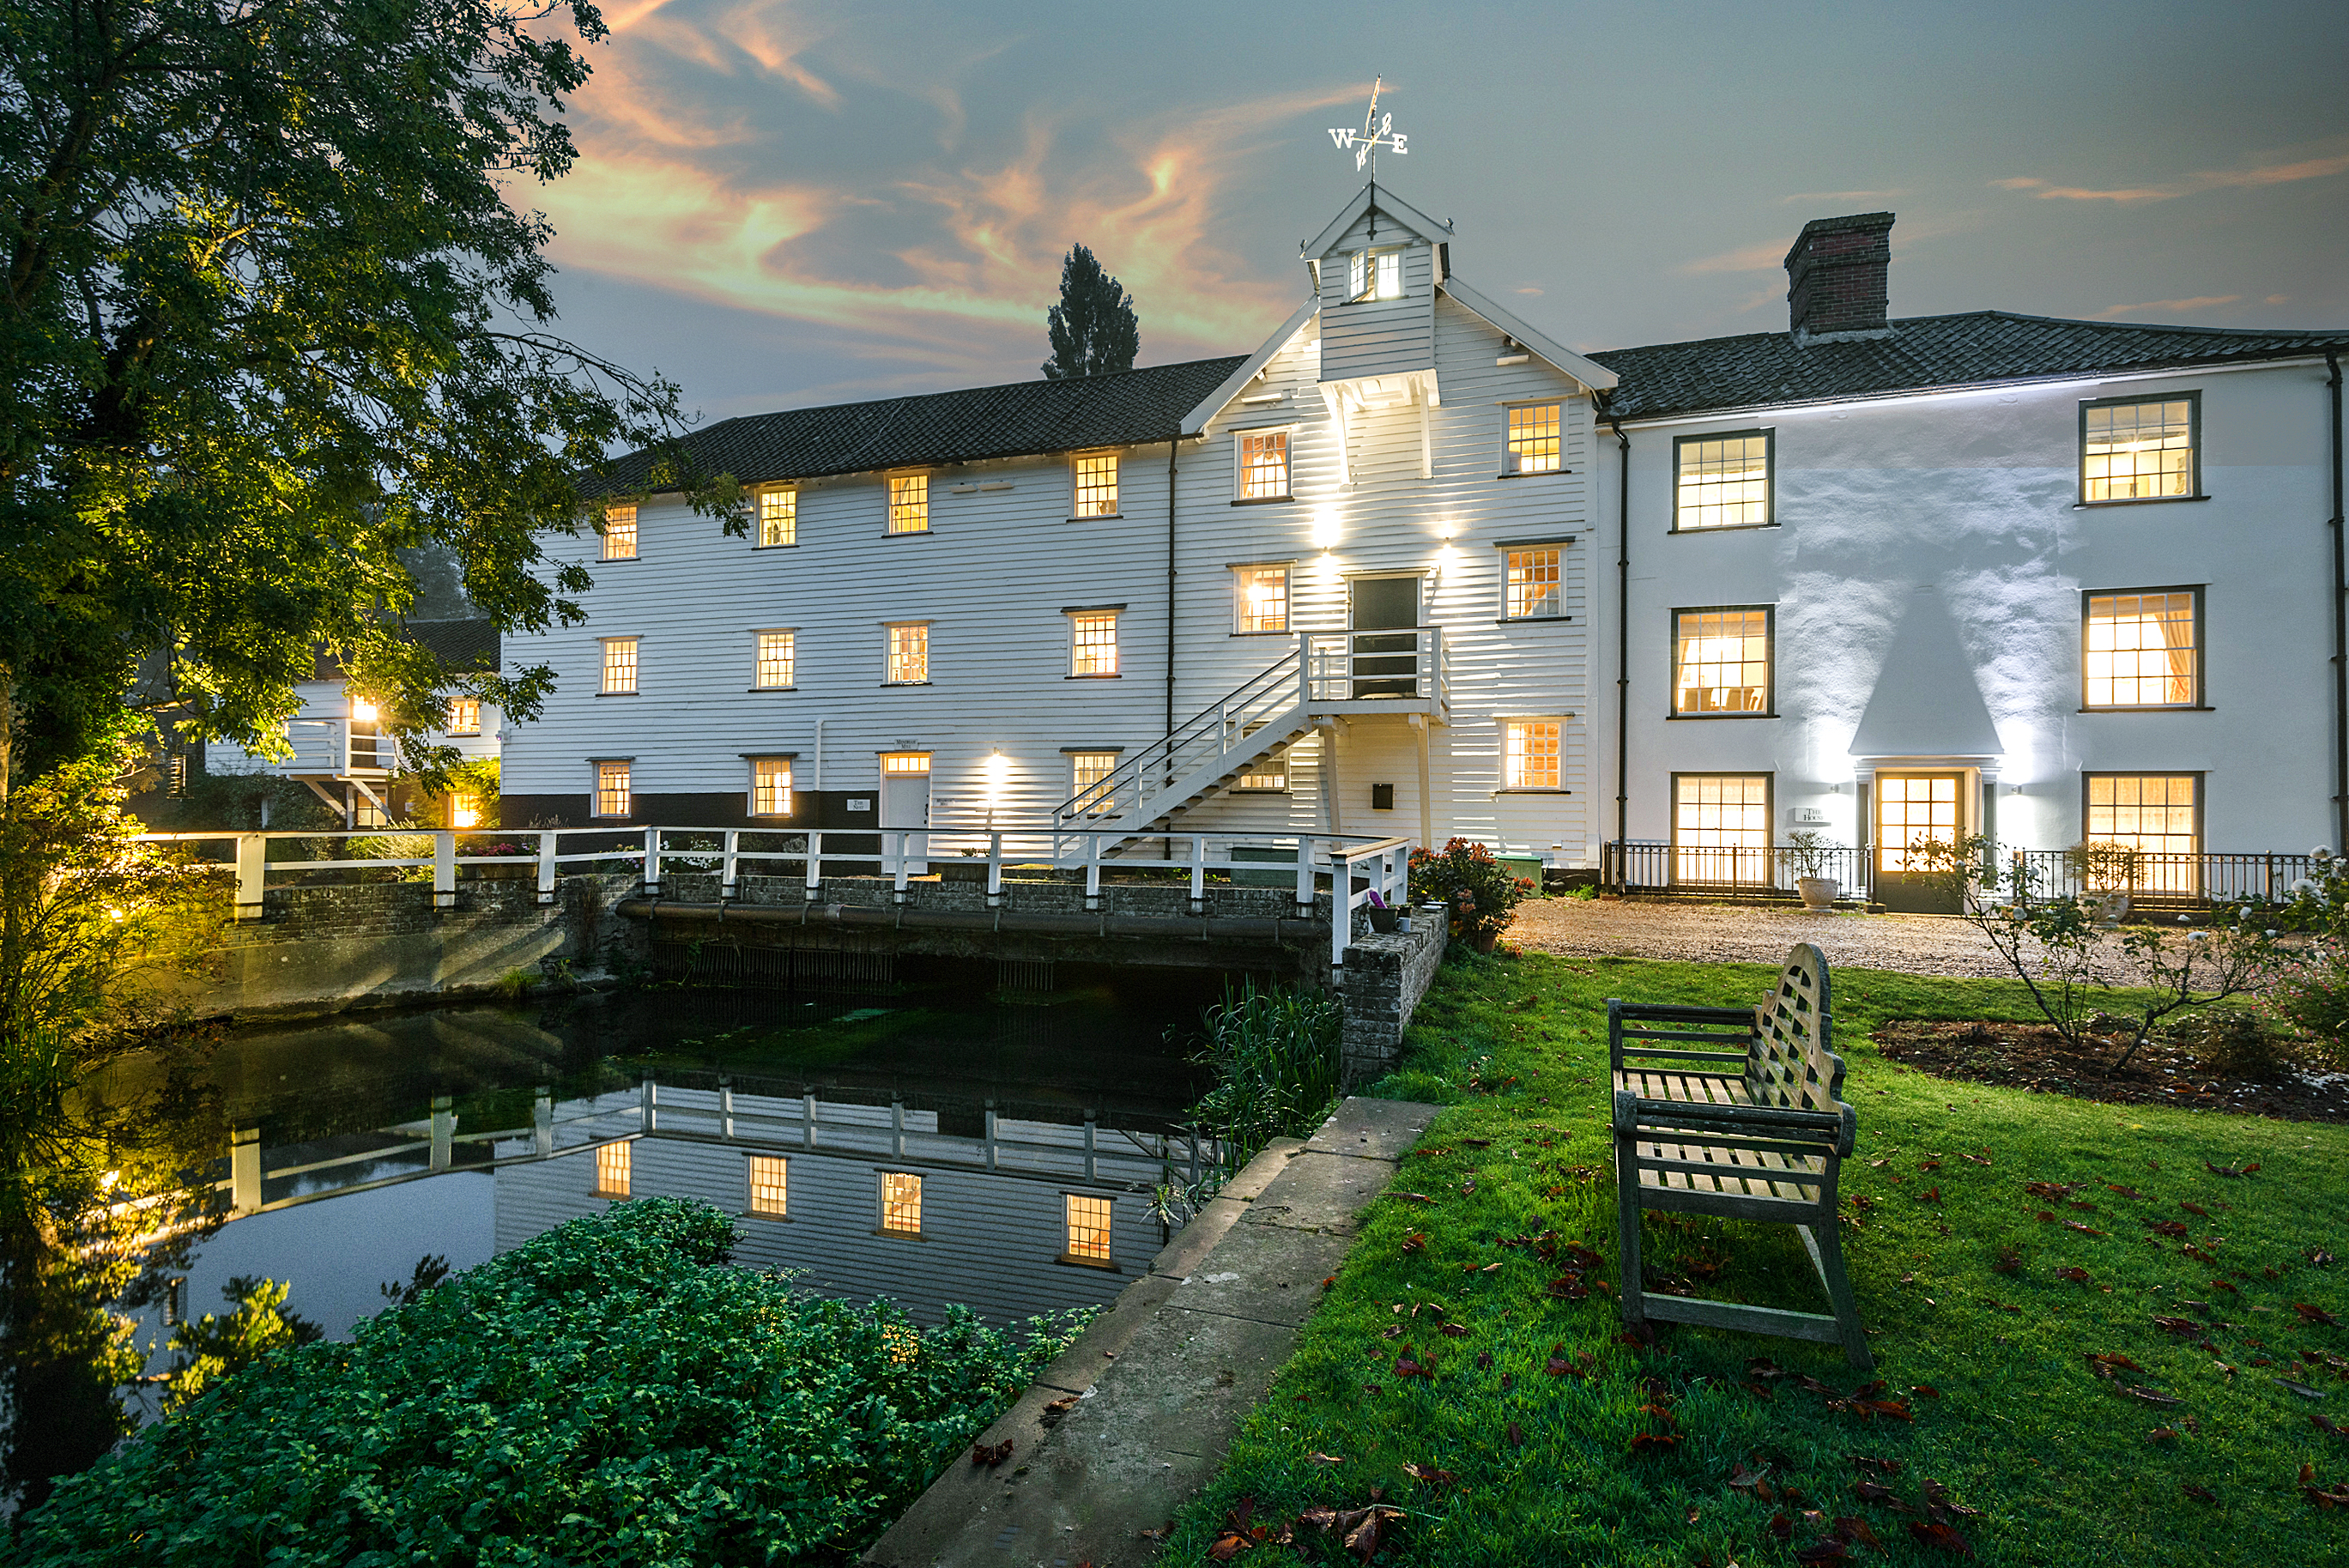 Mendham Mill - the house over a river